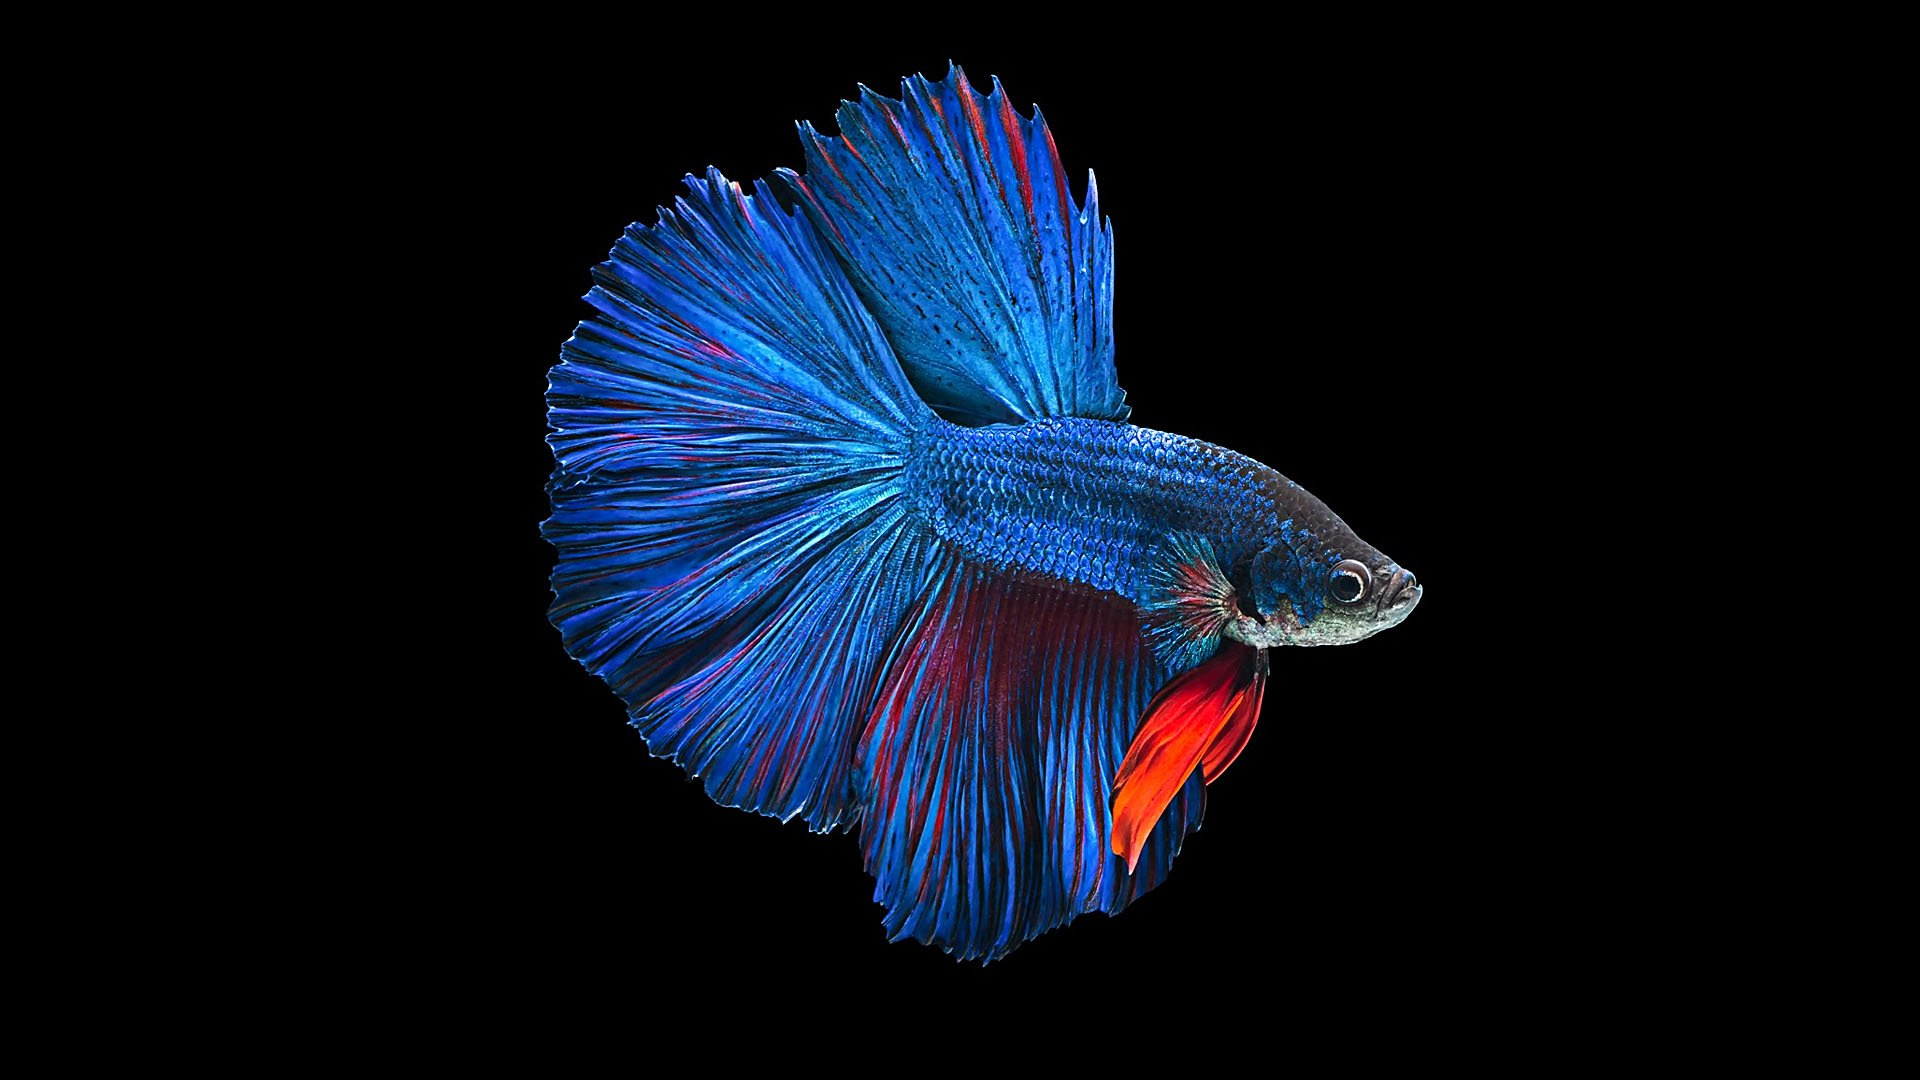 Betta Full HD Wallpaper and Background Image | 1920x1080 ...